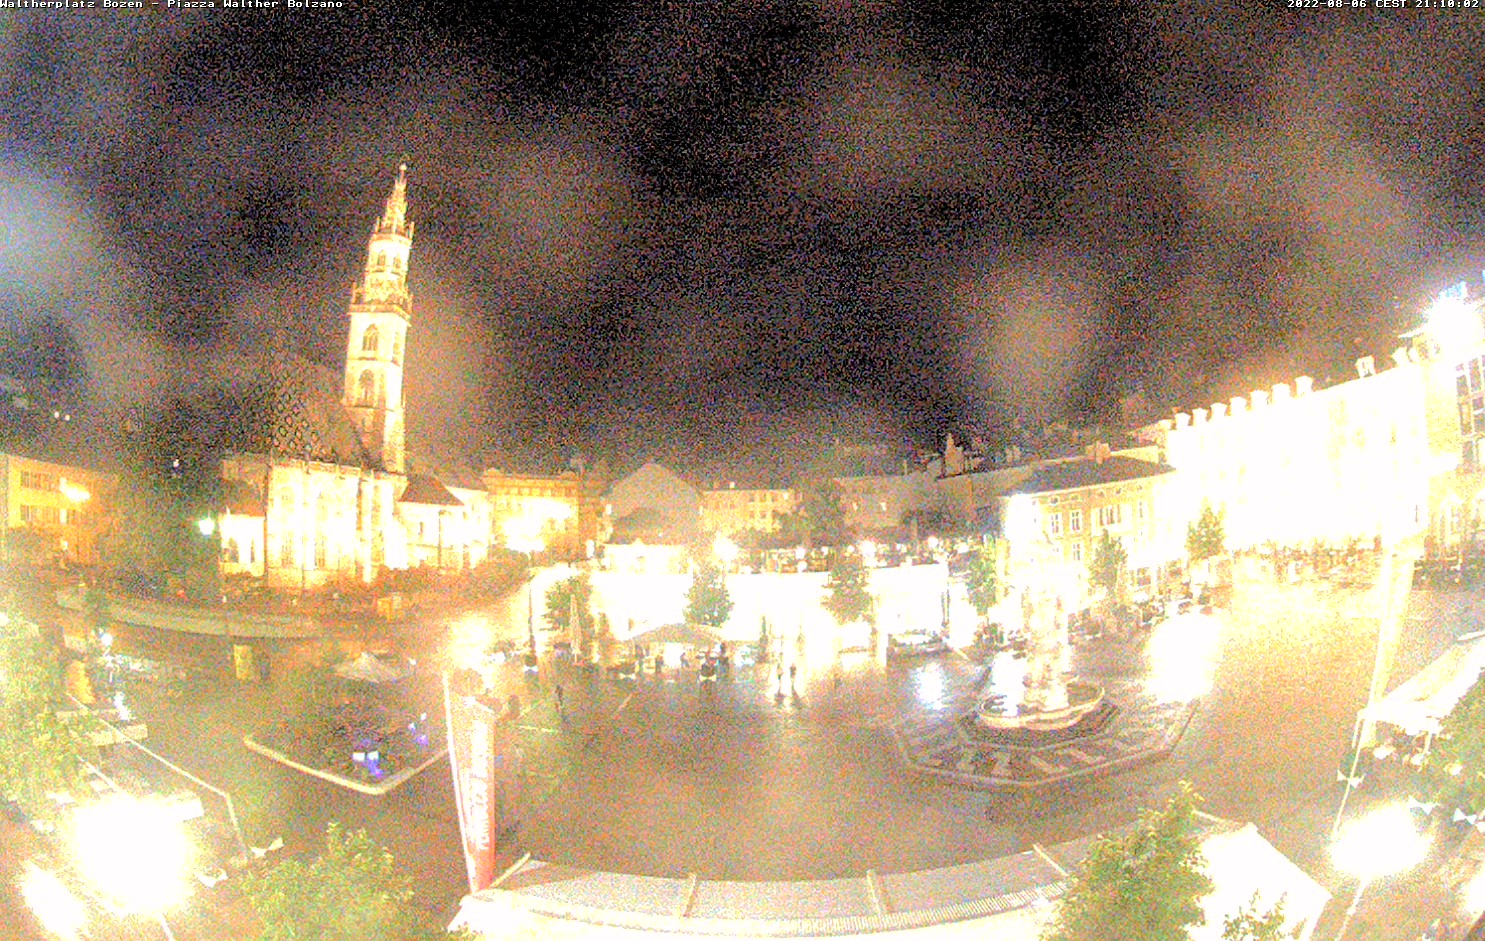 Webcam in Bozen - Waltherplatz